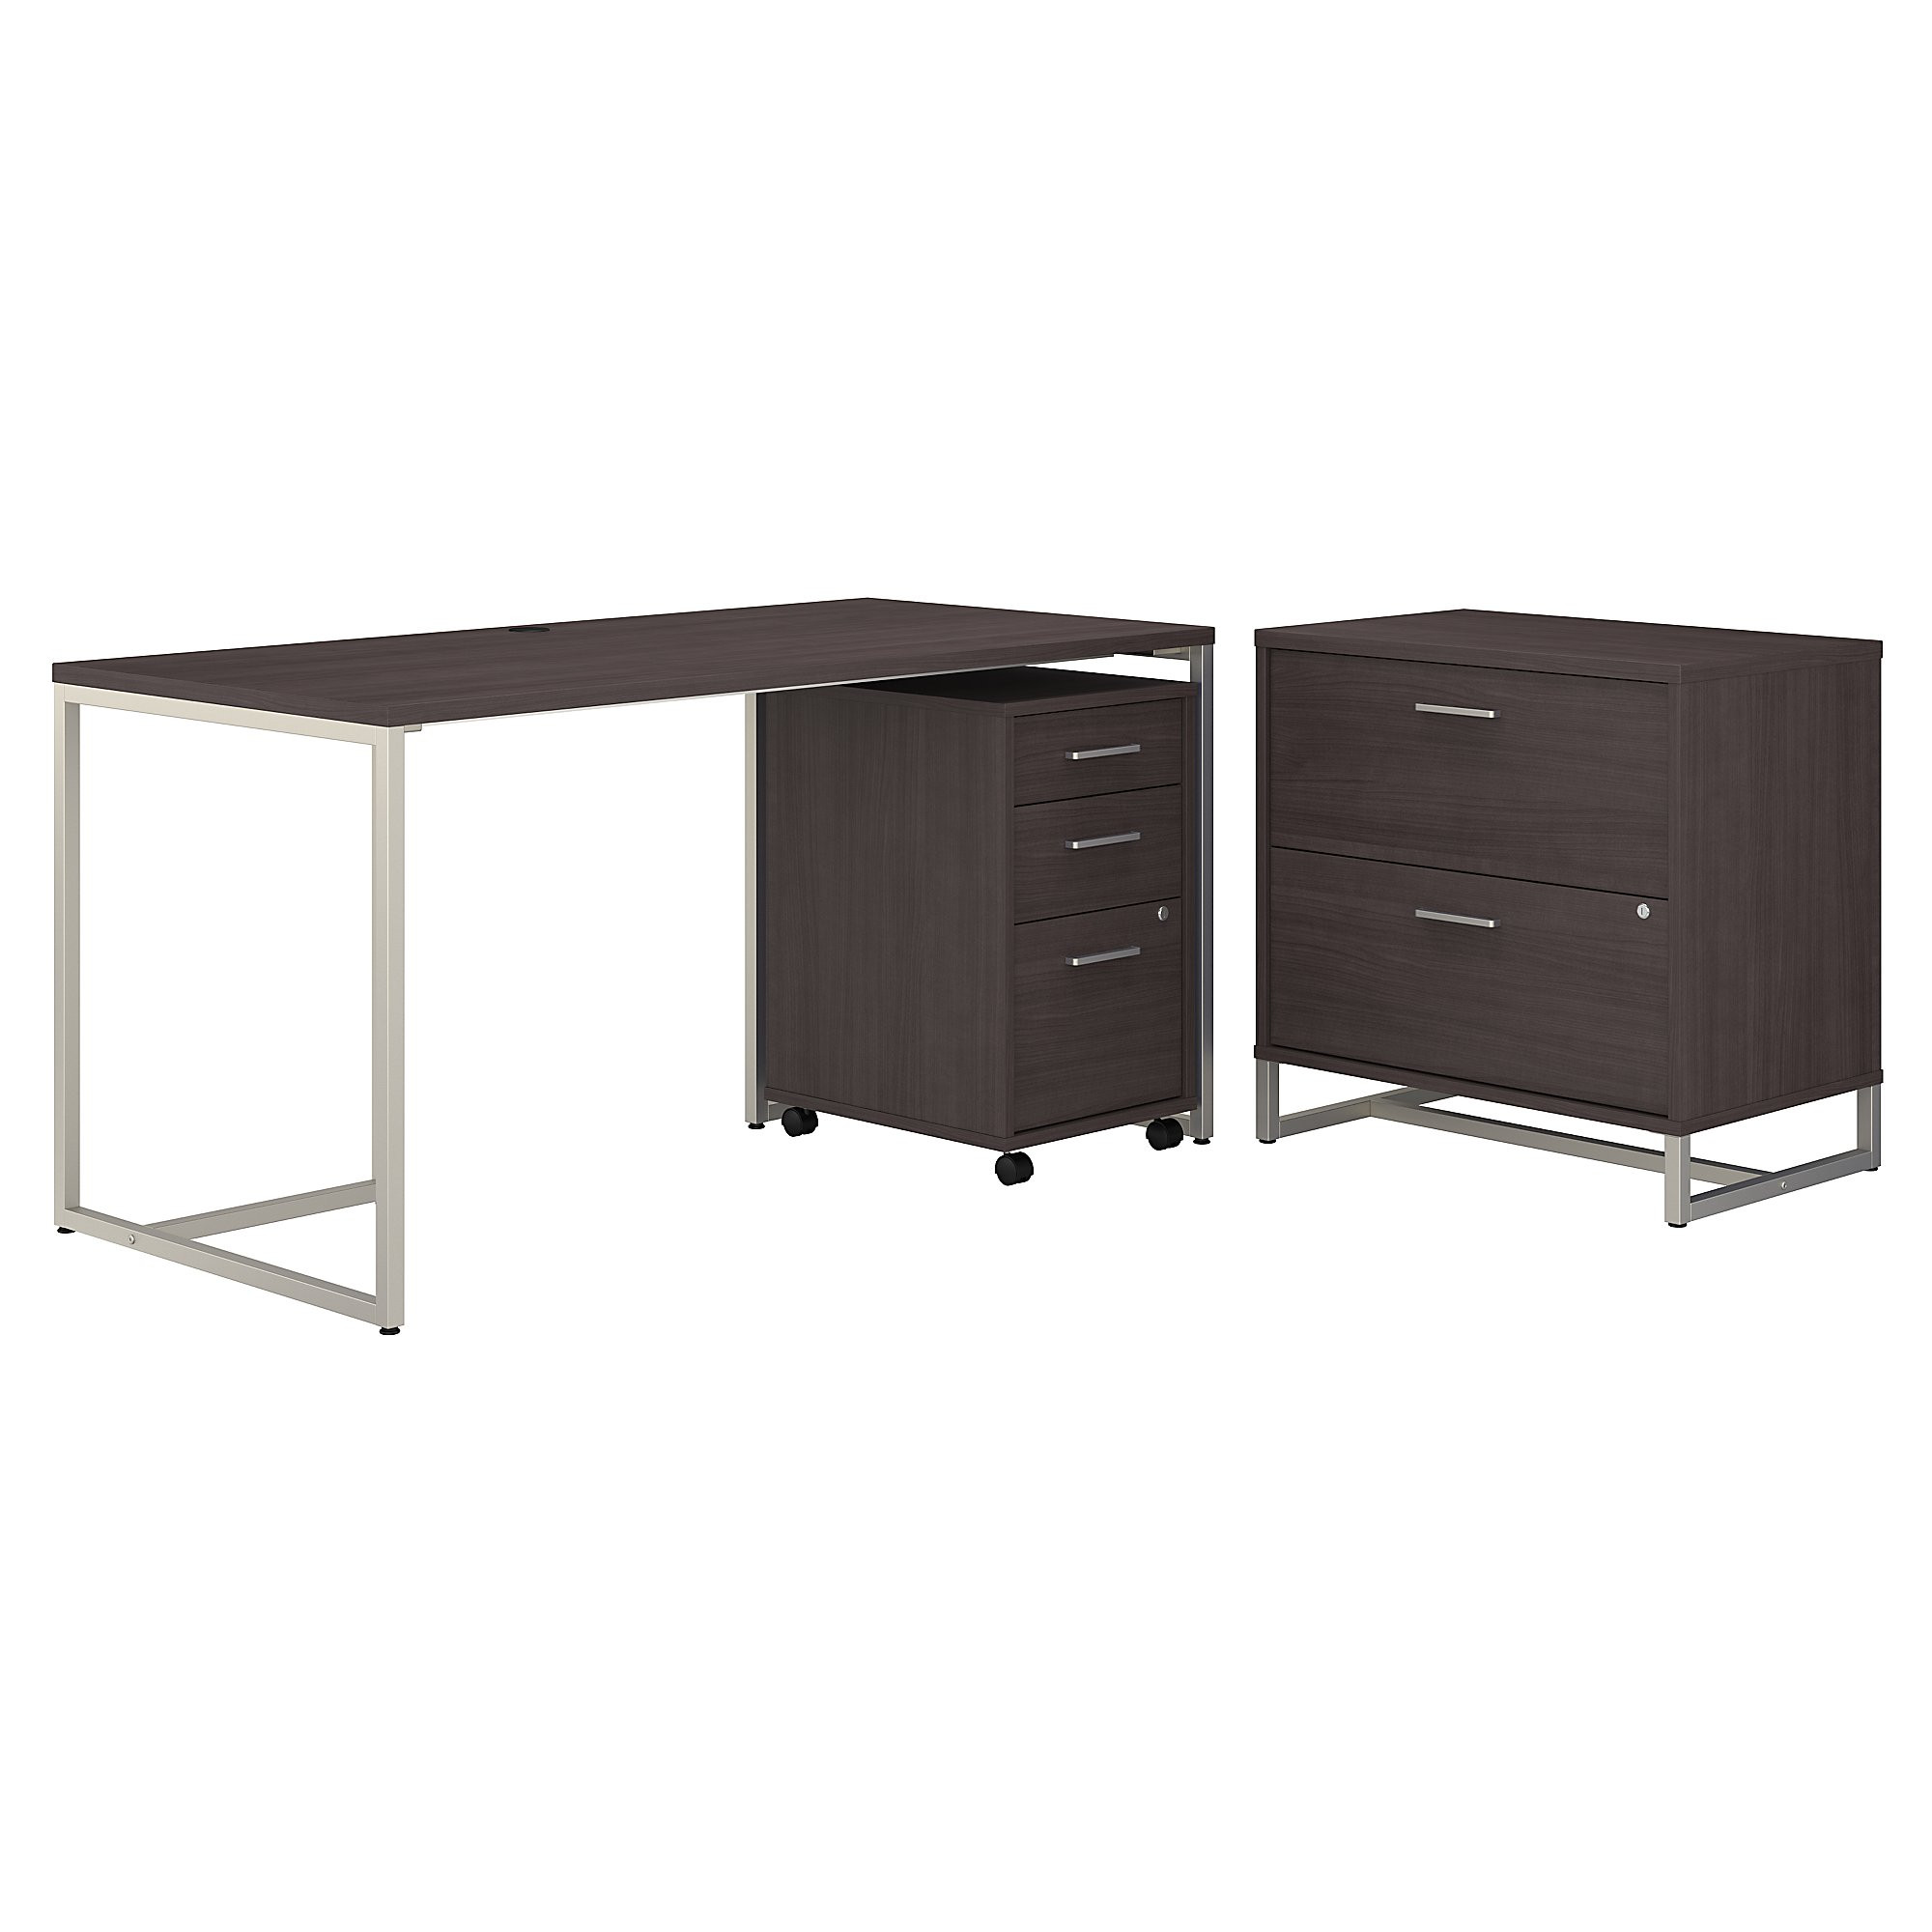 method writing desk with file cabinets in storm gray